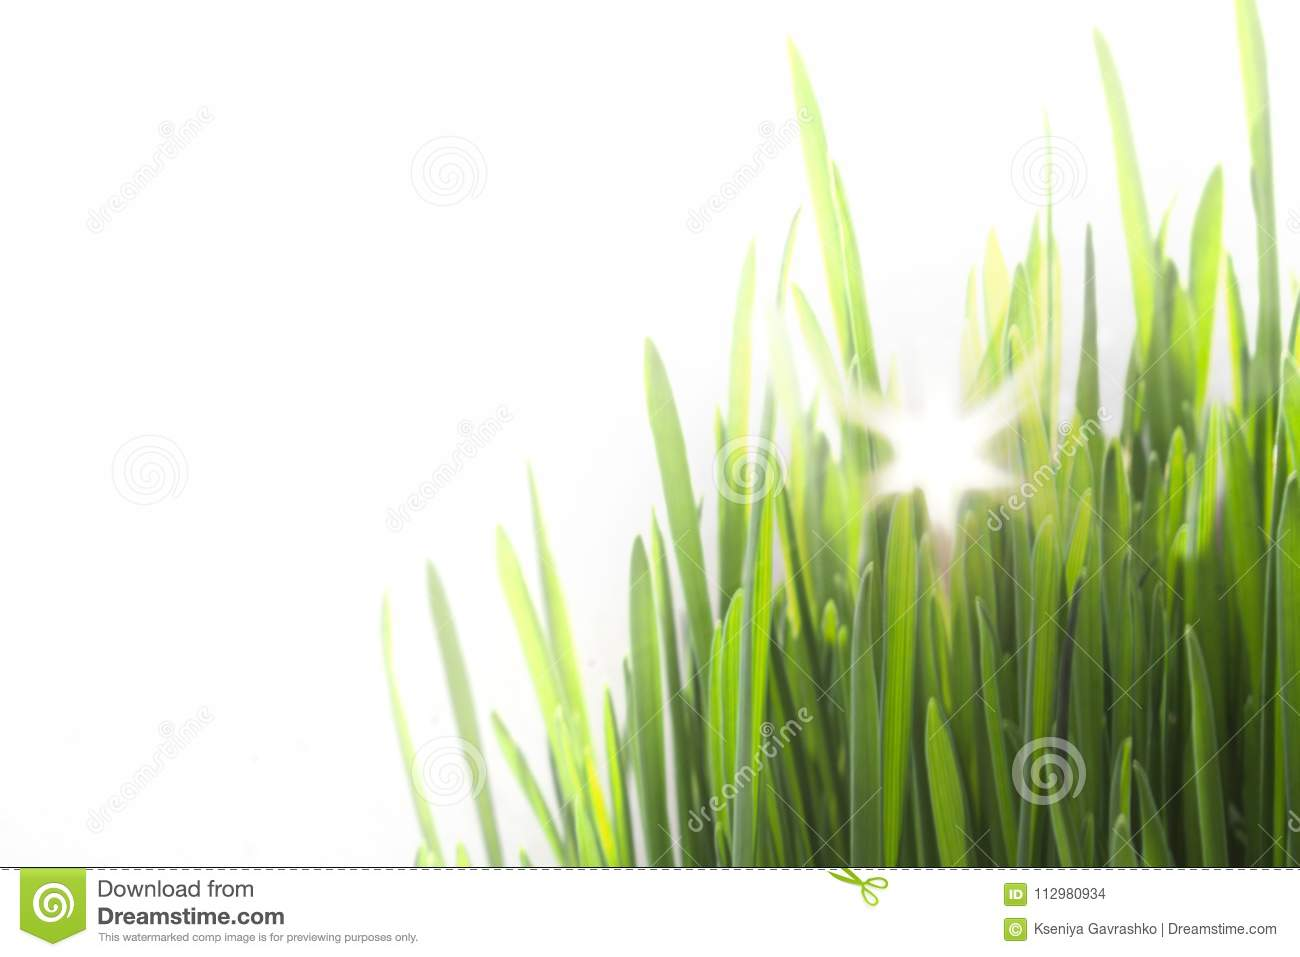 Bright Green Fresh Grass Isolated on White Background